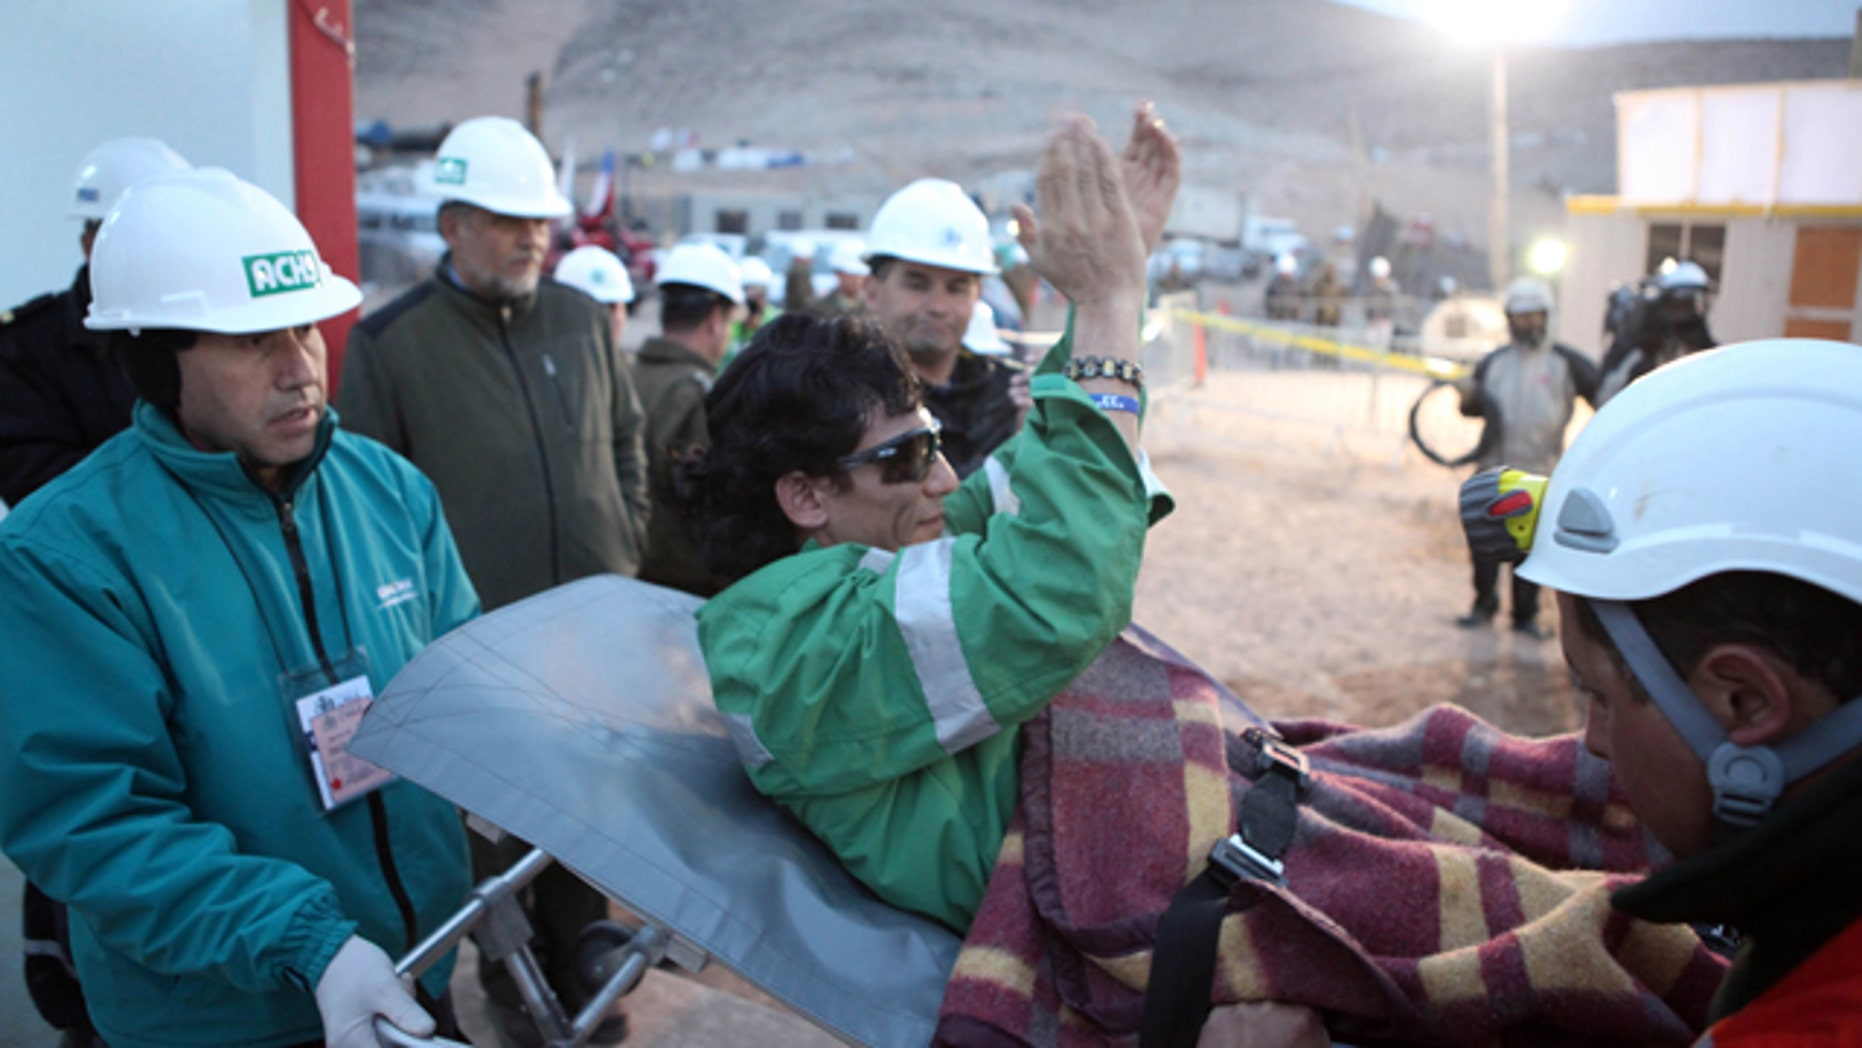 Miner Claudio Yanez celebrates as he is wheeled into a field hospital after arriving as the eighth miner to be hoisted to the surface in Copiapo October 13, 2010.